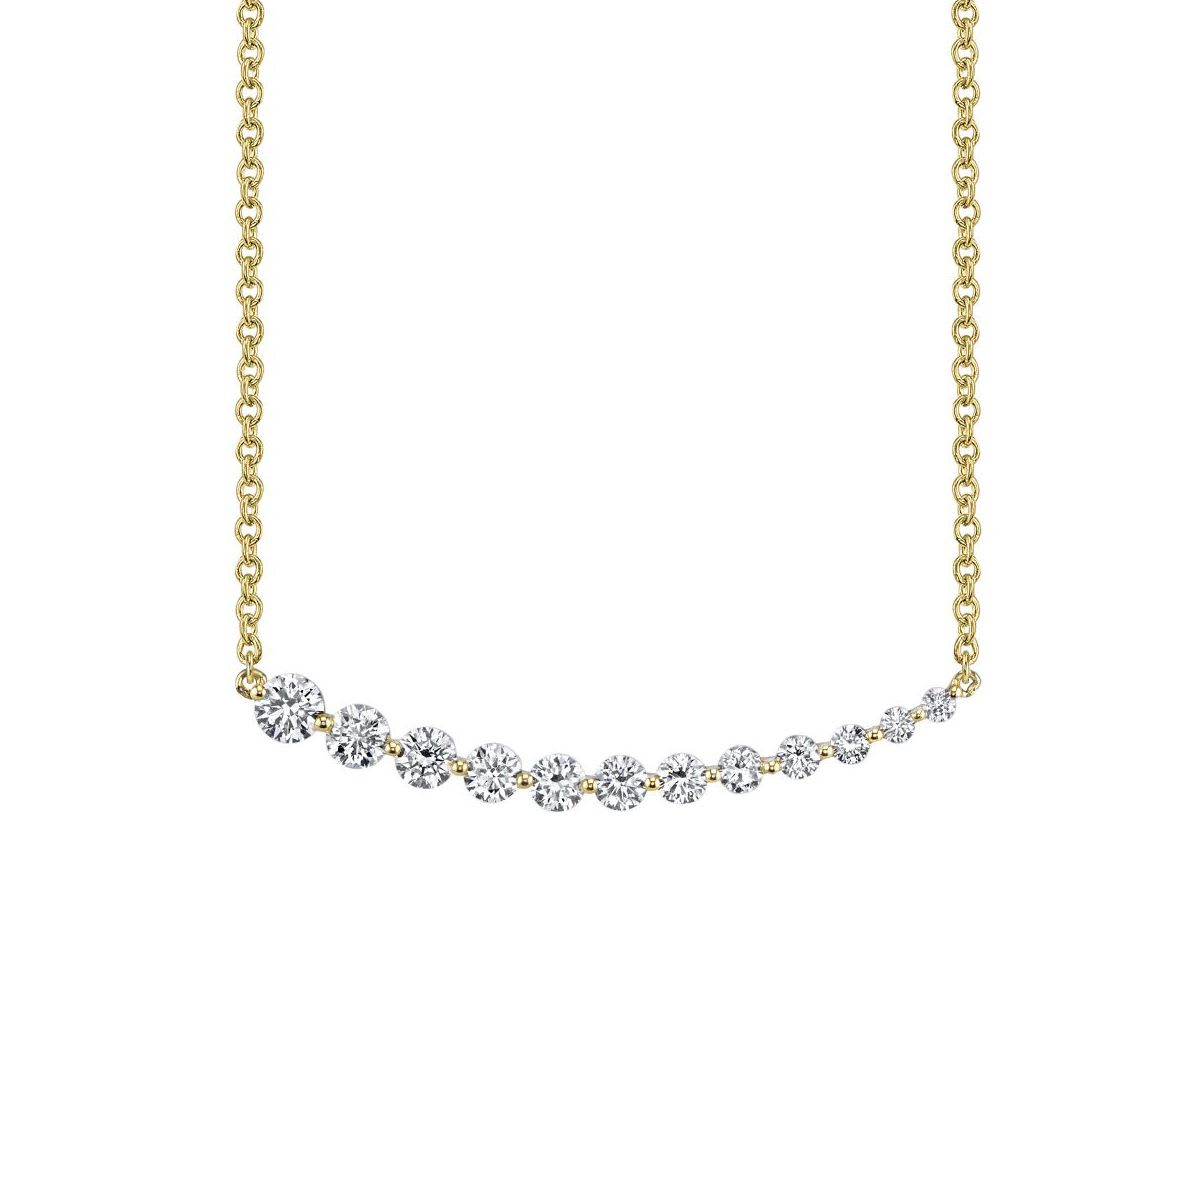 jewelry_Anita Ko 18k Graduating Diamond Necklace